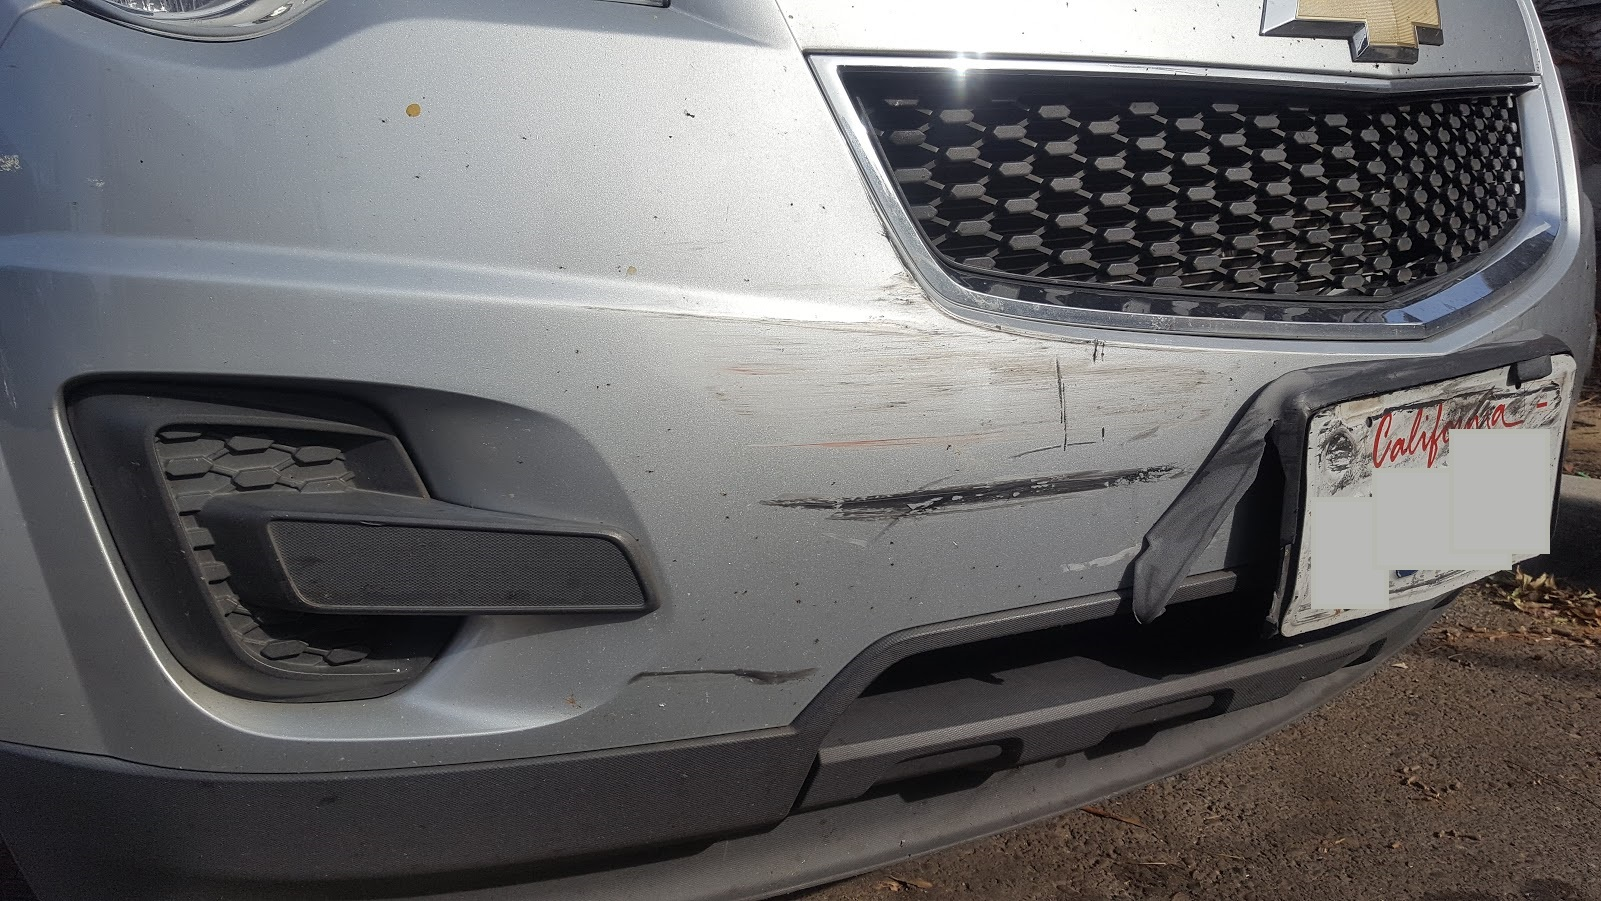 Special One Day Bumper Repairs